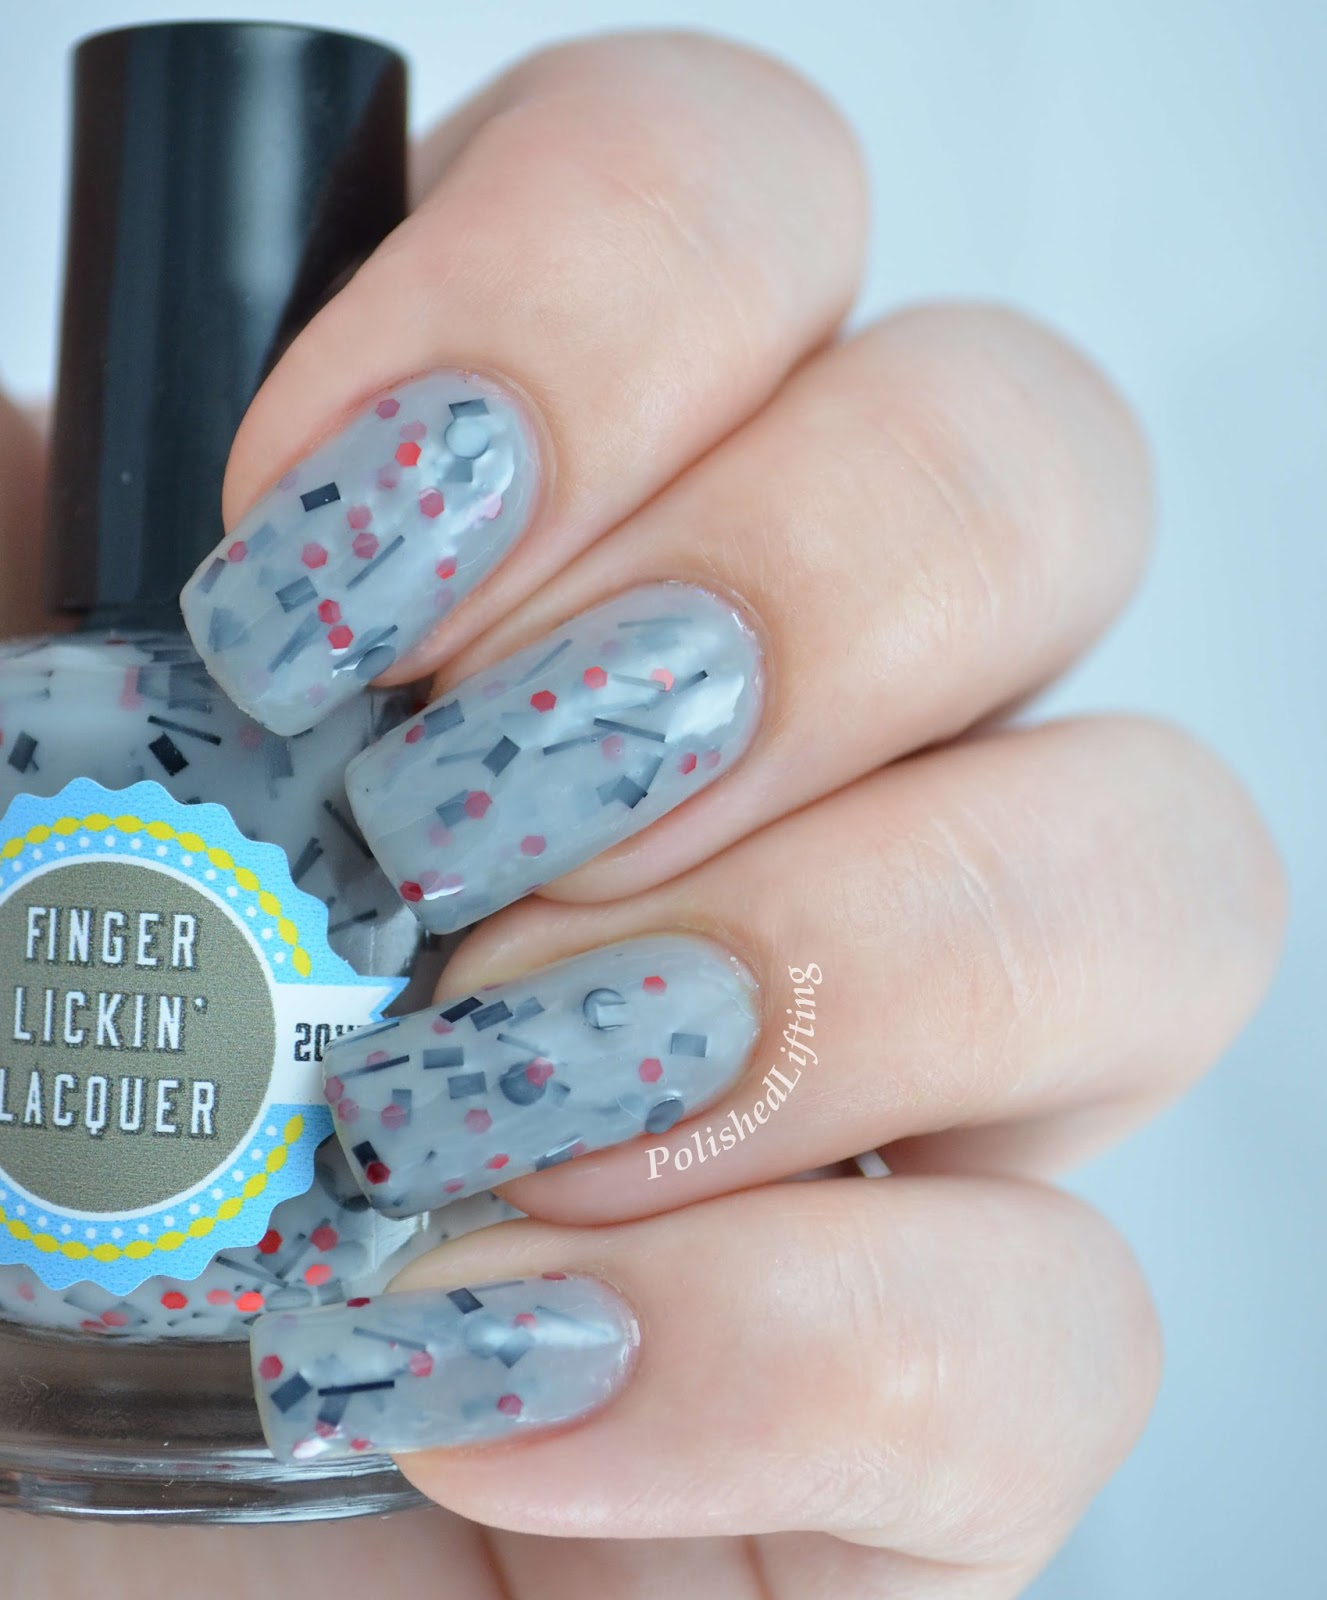 Finger Lickin' Lacquer Totally Rad Press Start